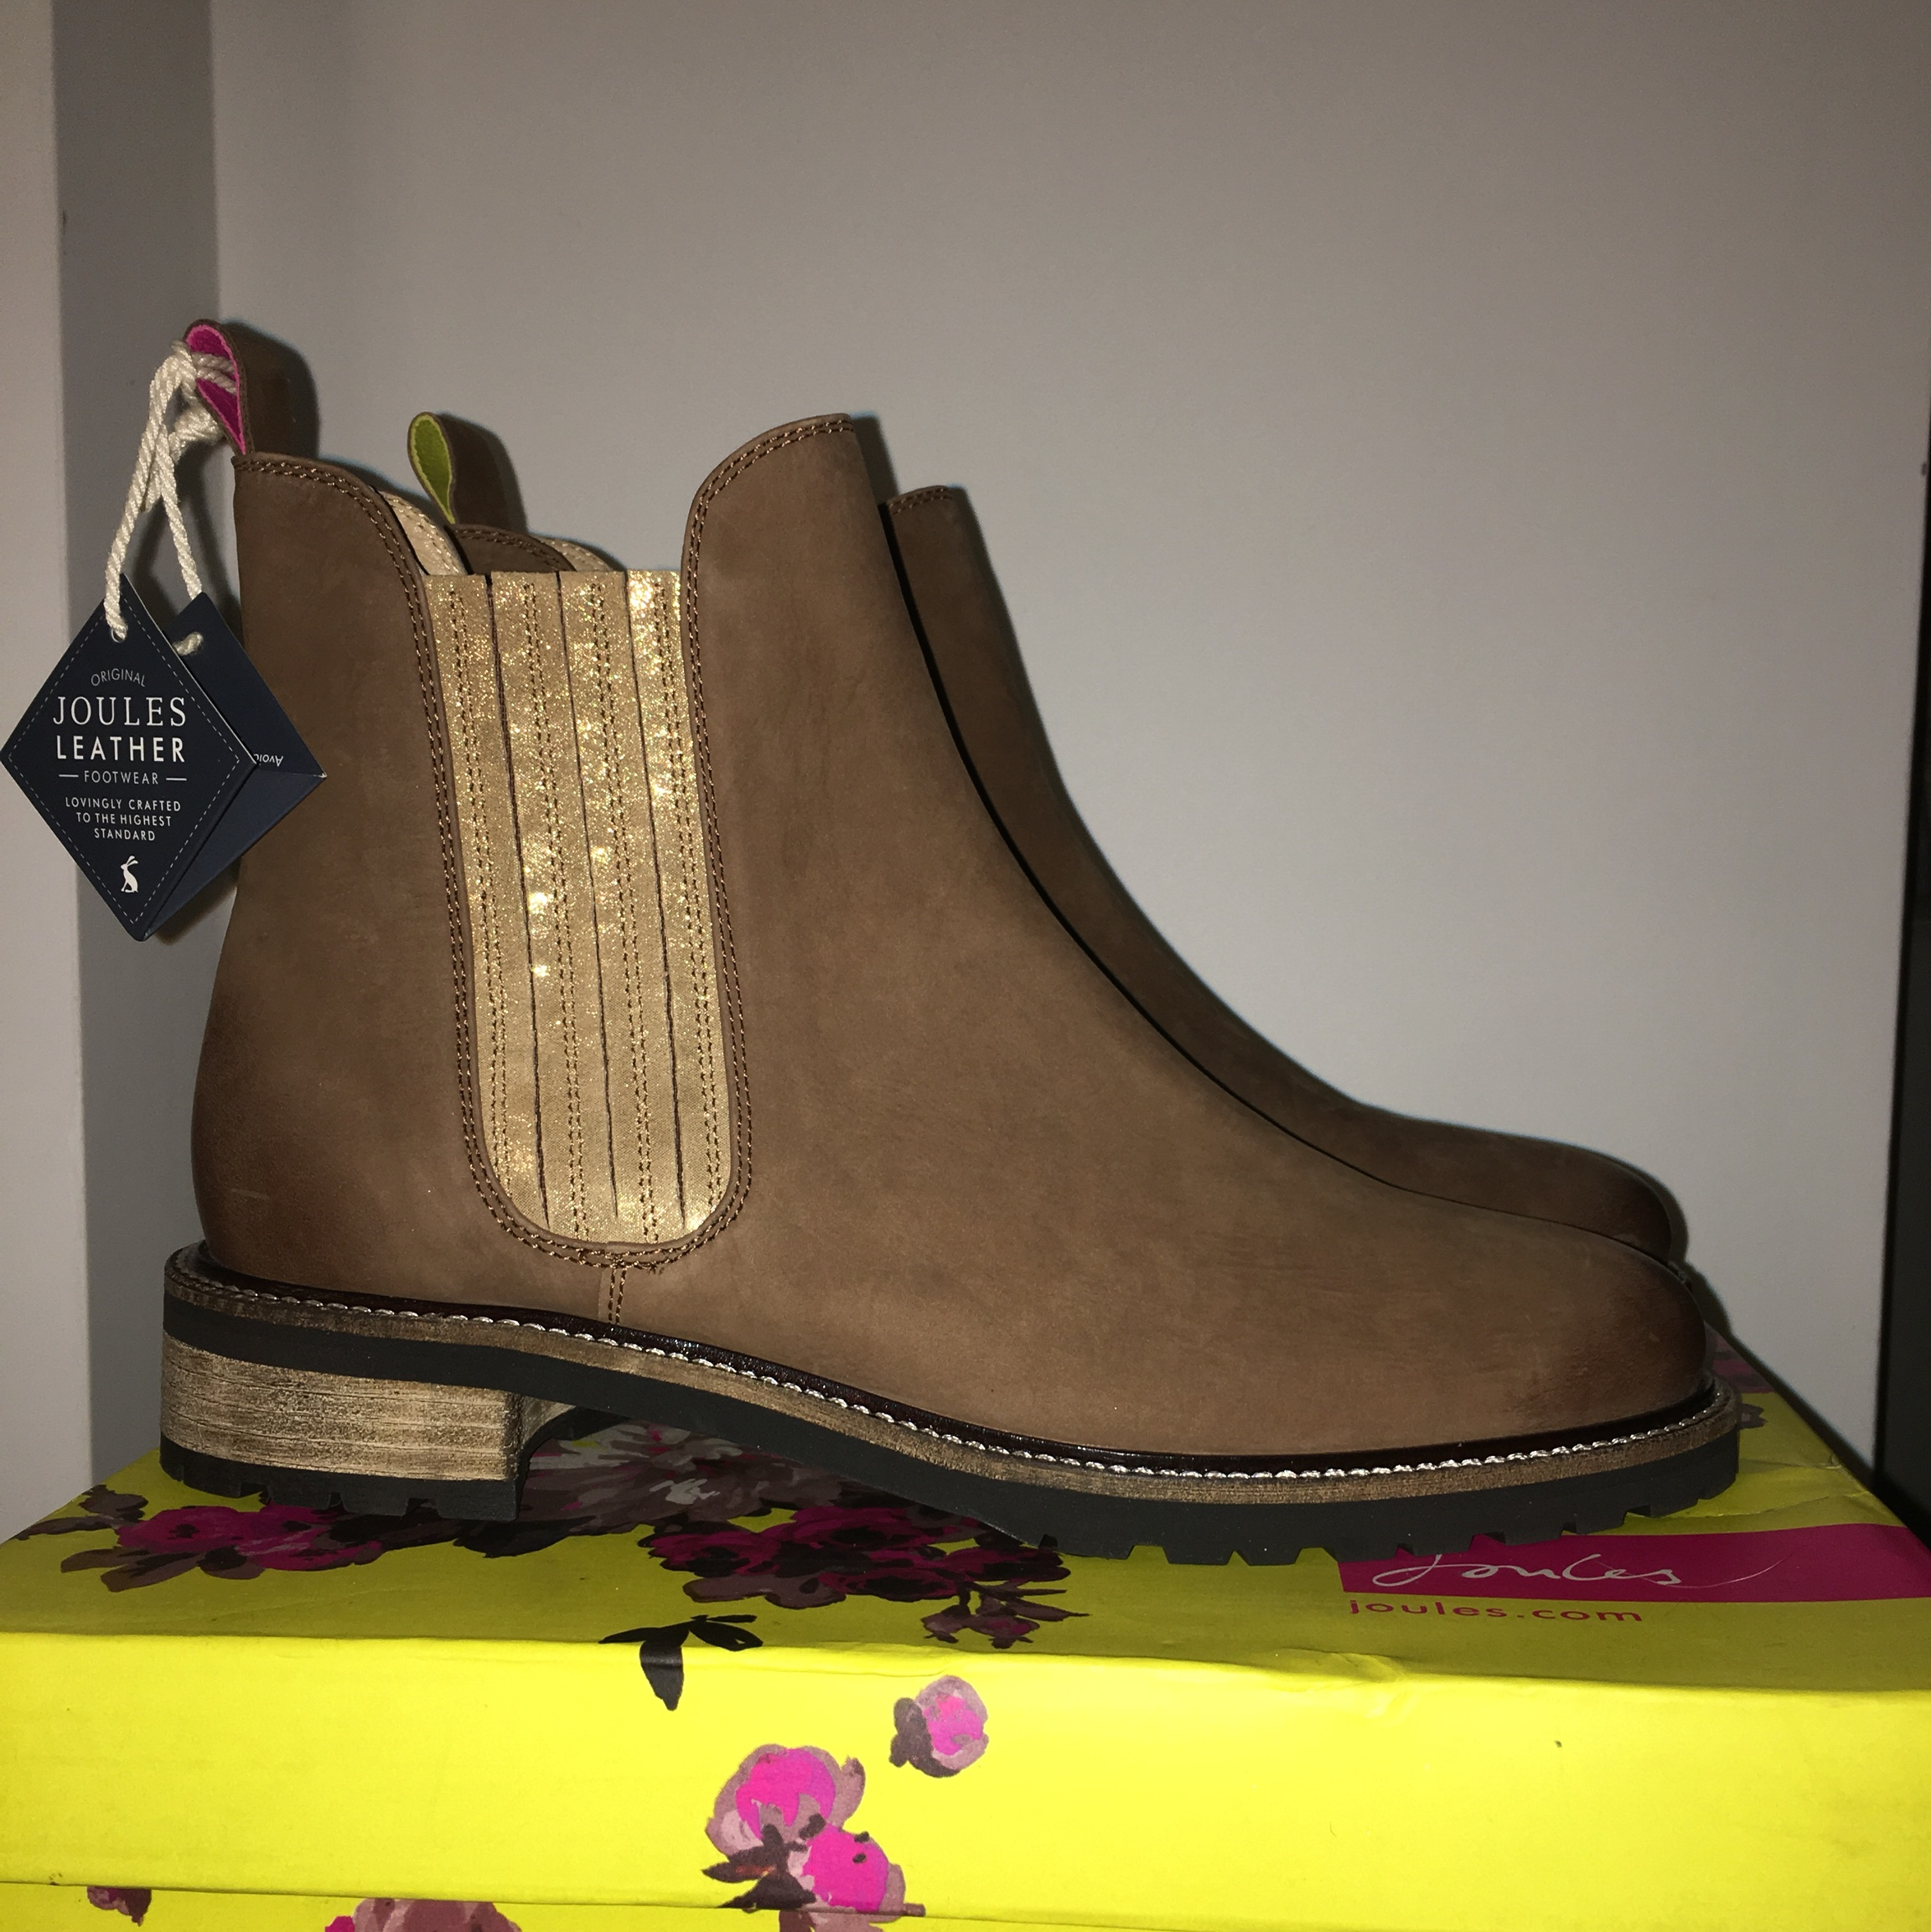 b3ef90da463 Joules clarendon boots Brand new with tags!! Bought... - Depop